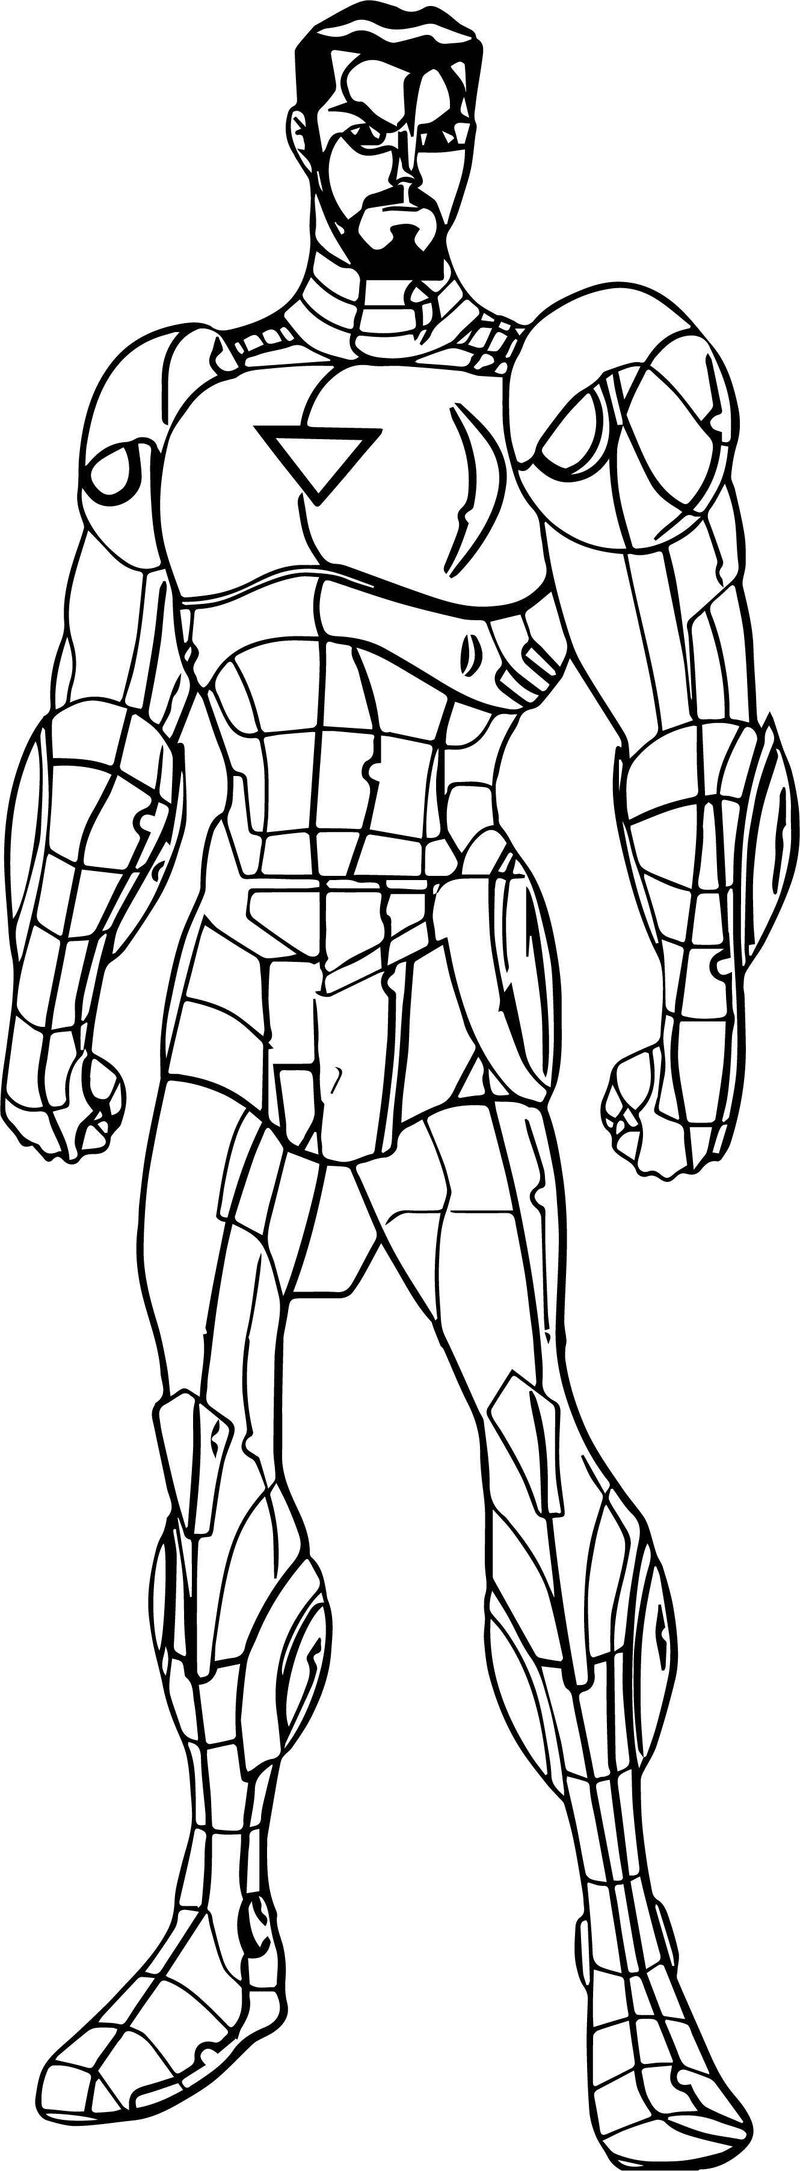 Avengers Coloring Page 11